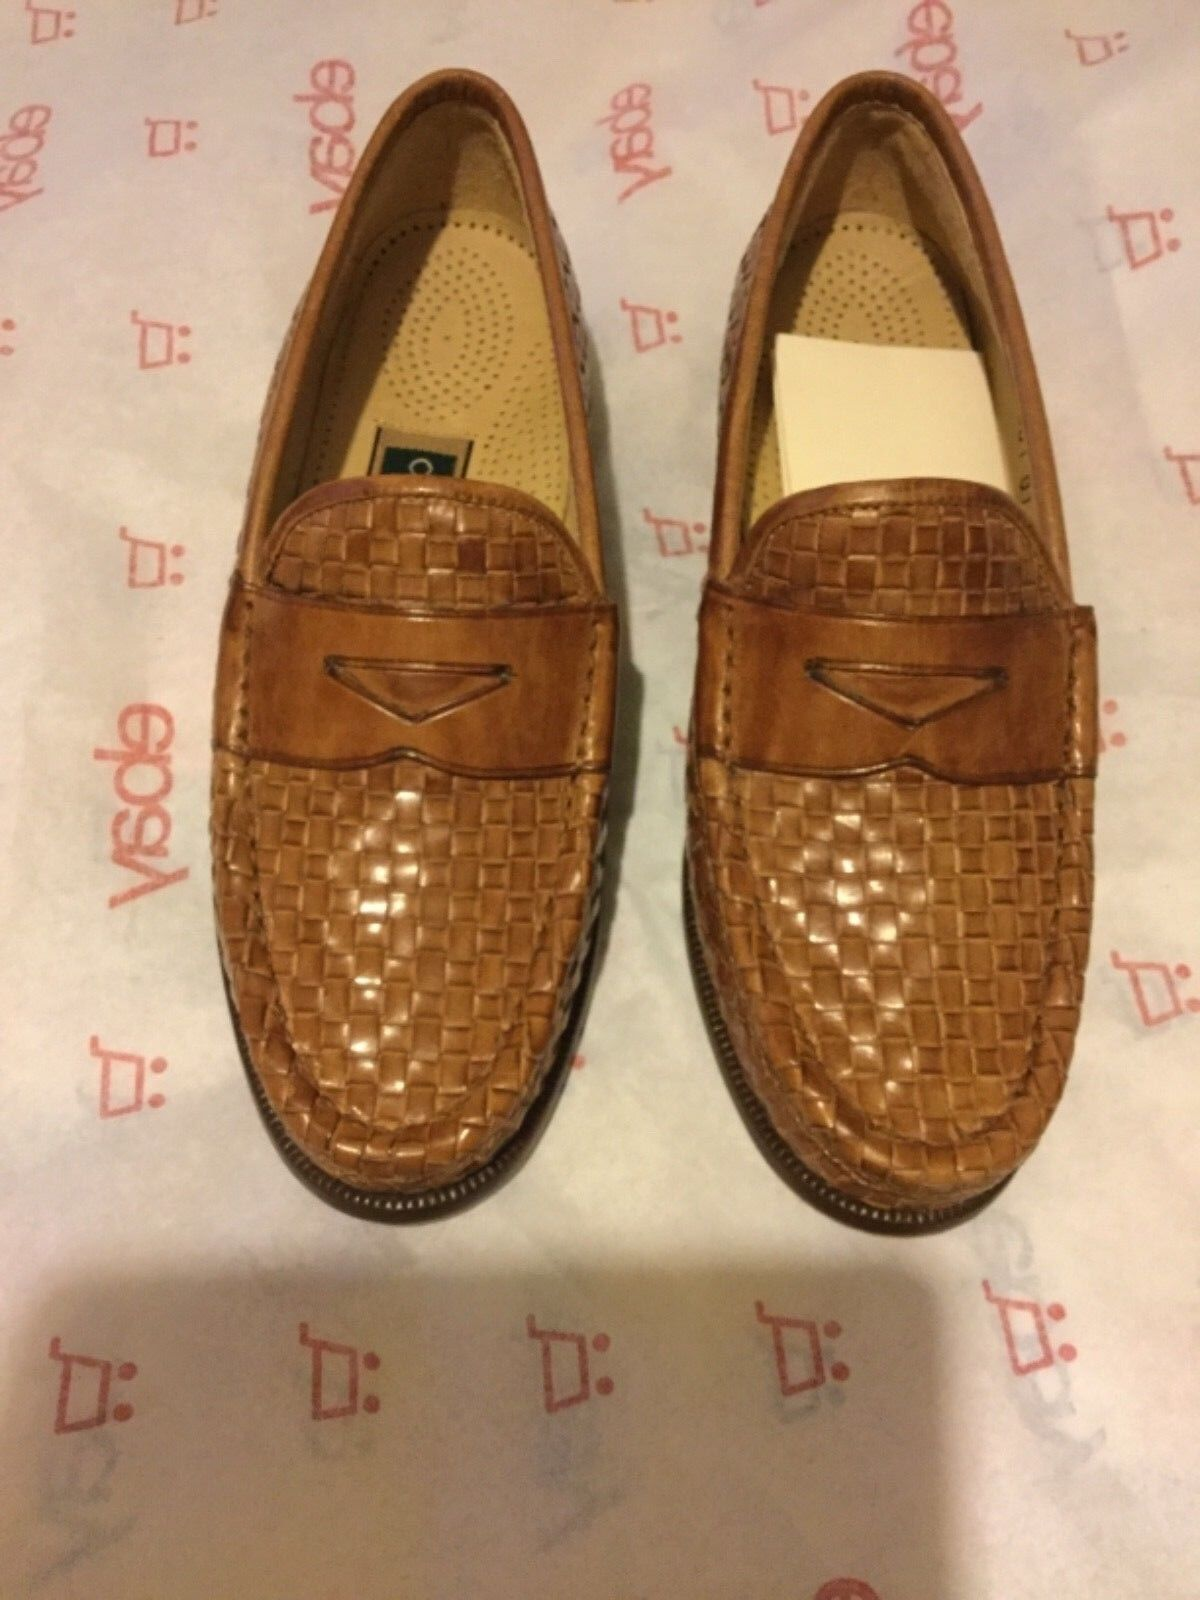 NEW Cole Haan Women's Woven Leather Loafers w  Comfort Insole - 6 M